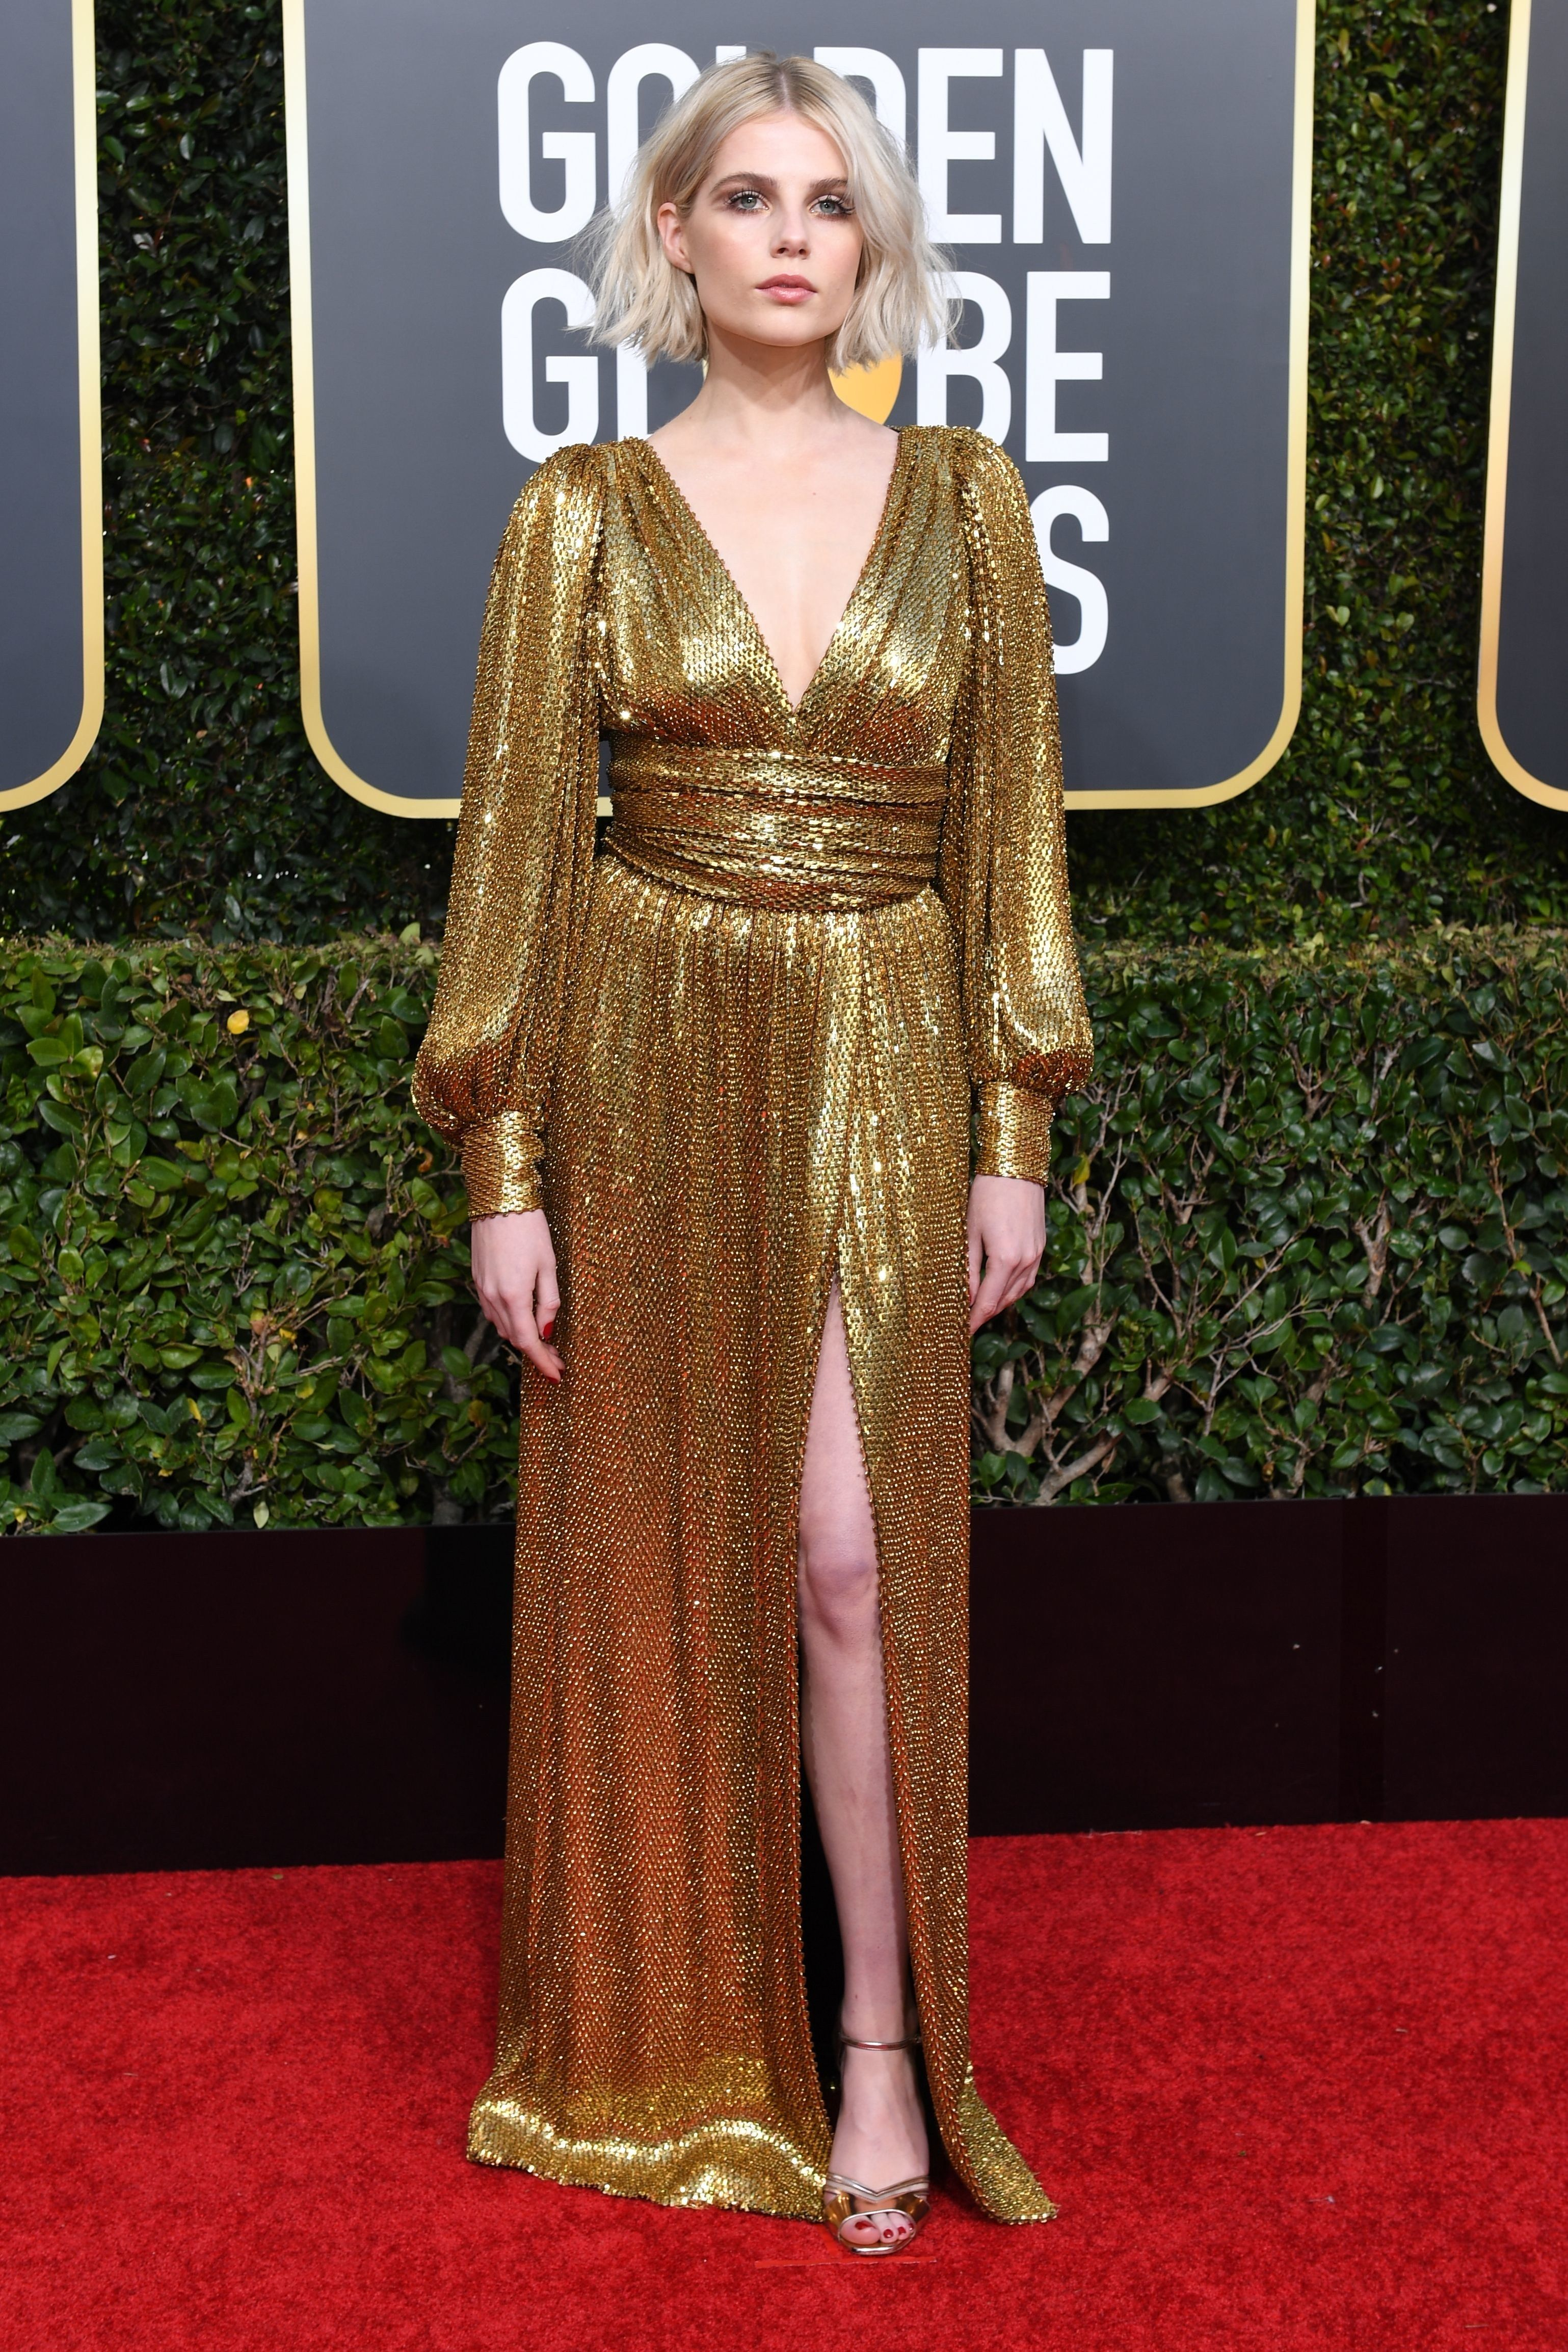 932a3f84faef Why Are Actors Wearing Black and White Bracelets at the Golden Globes  Red  Carpet Looks